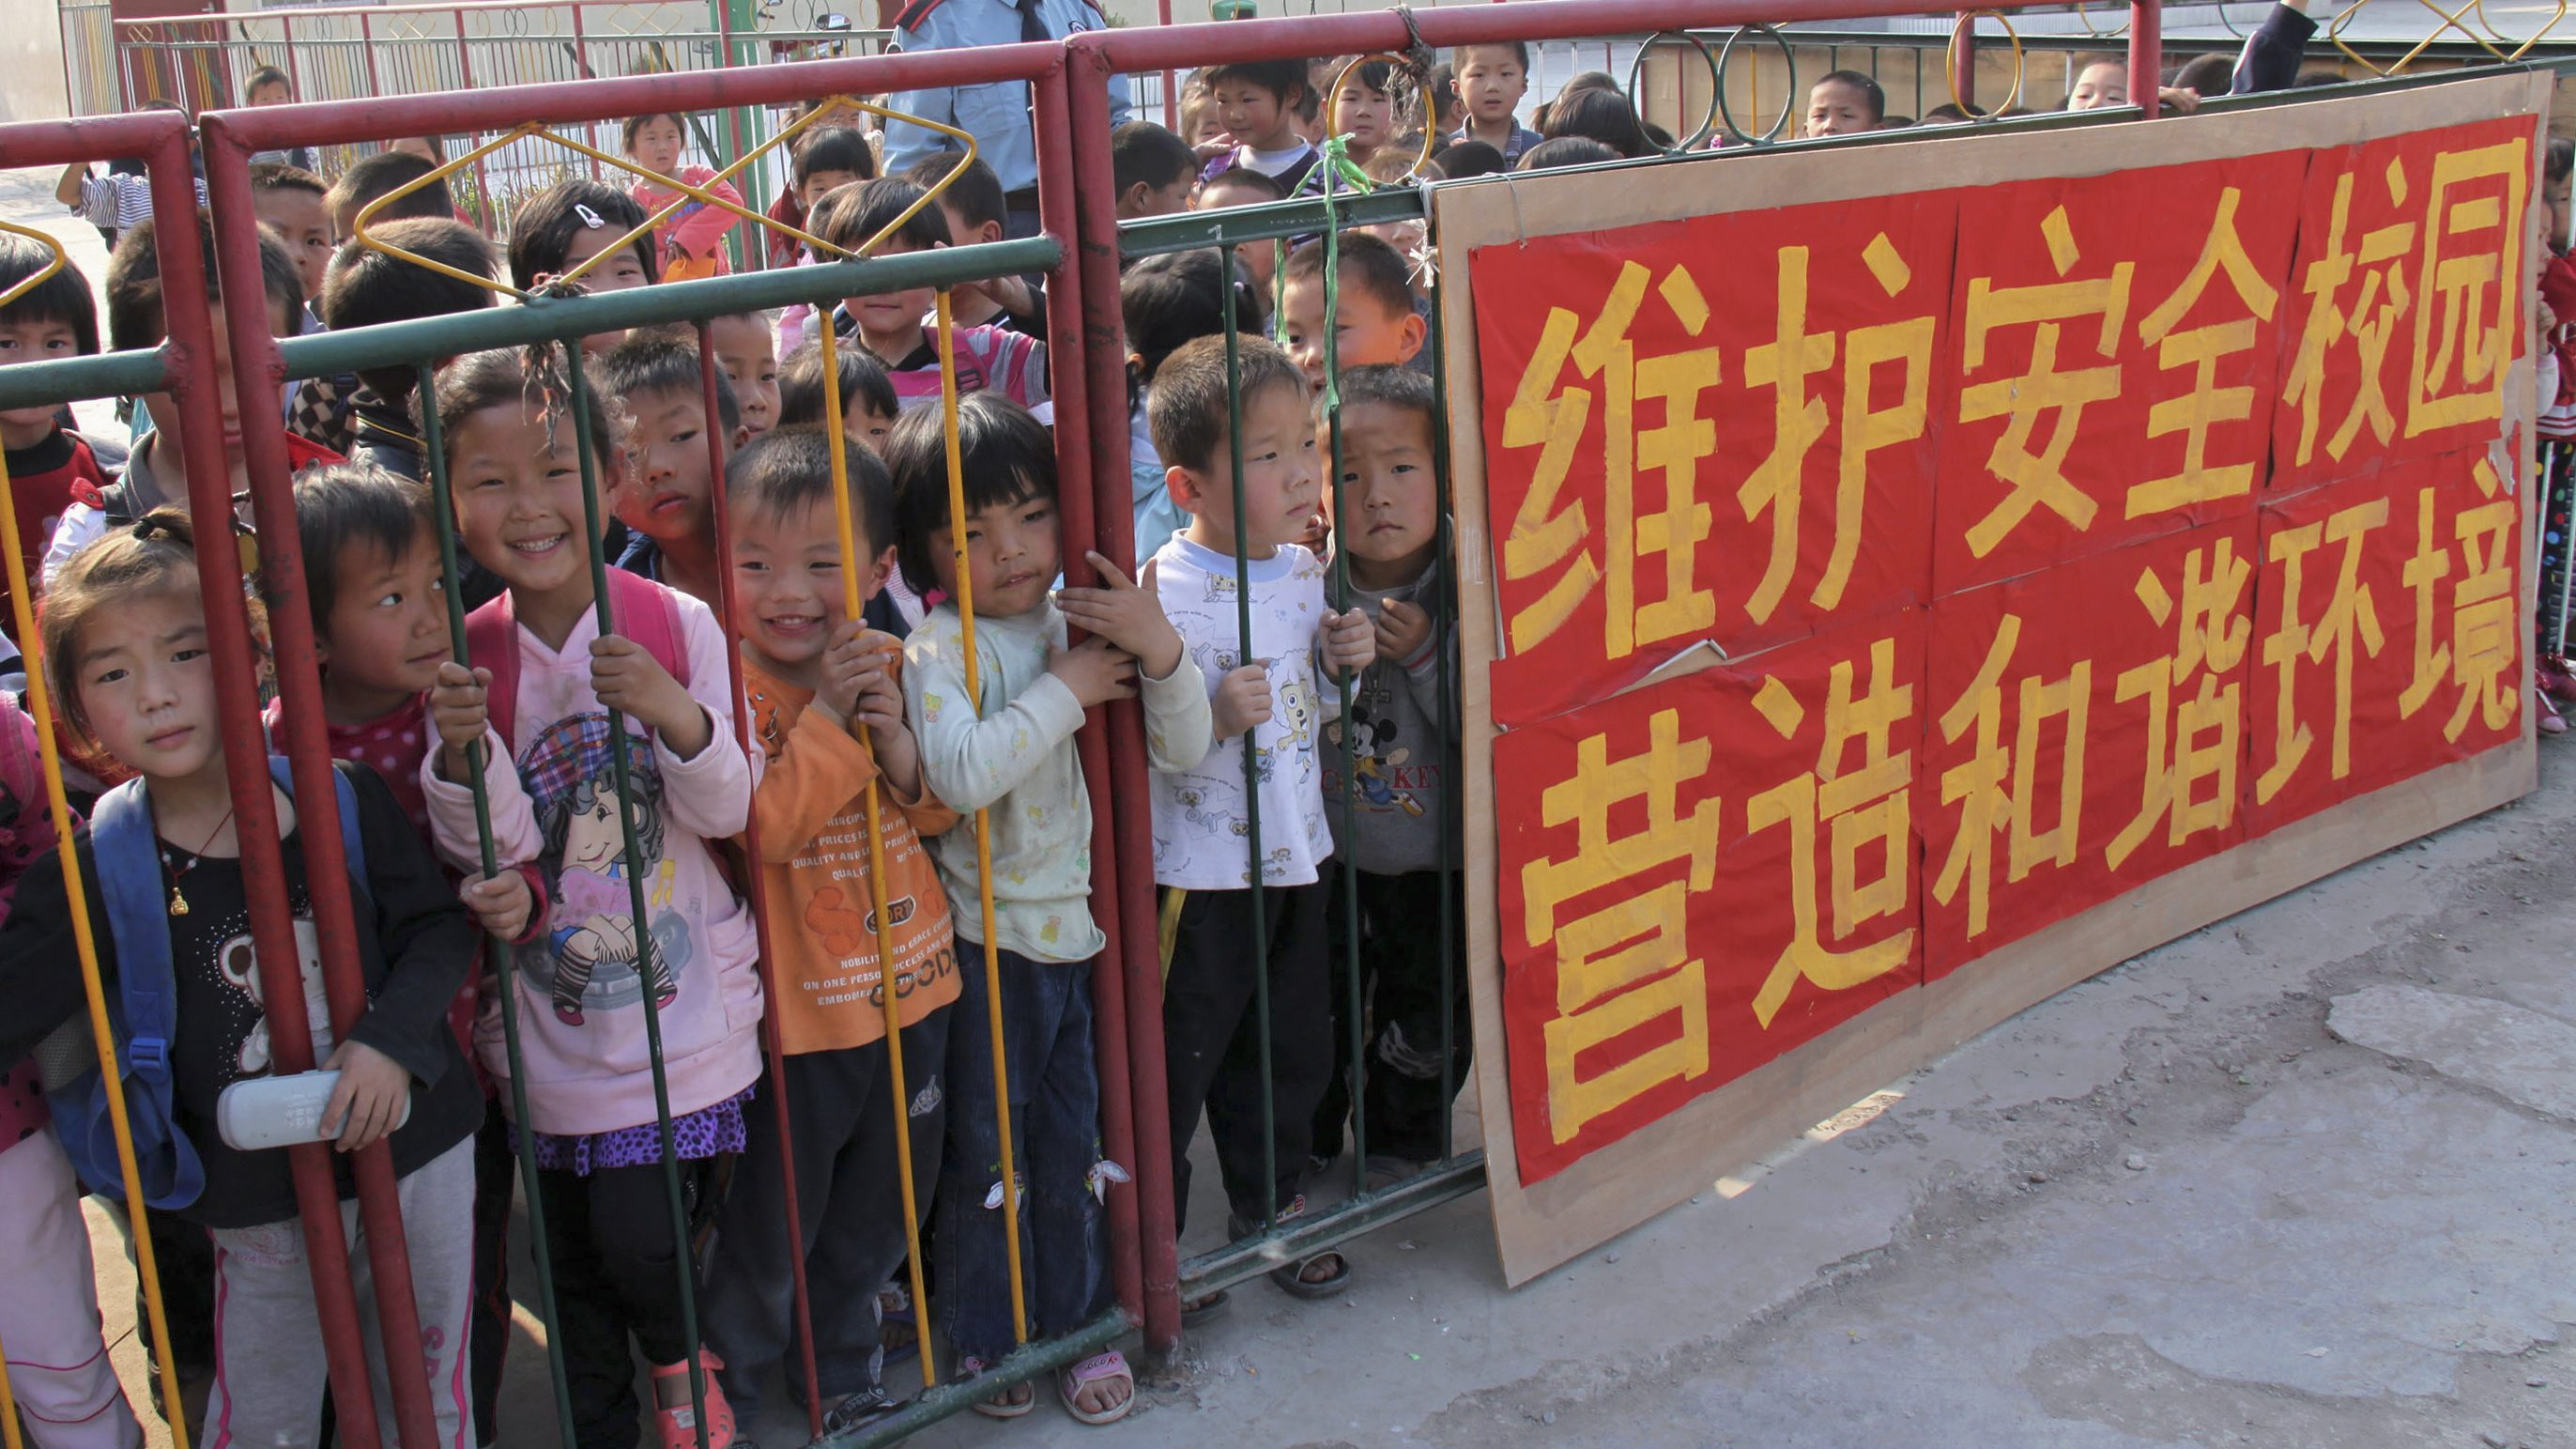 """Children wait behind fence for their parents after school at a kindergarten in Tangying County, Henan province May 13, 2010. A spate of school killings in China has """"deep-seated"""" roots in the country's social tensions which need addressing, Premier Wen Jiabao said. The Chinese characters read, """"maintain school security and create a harmonious environment""""."""